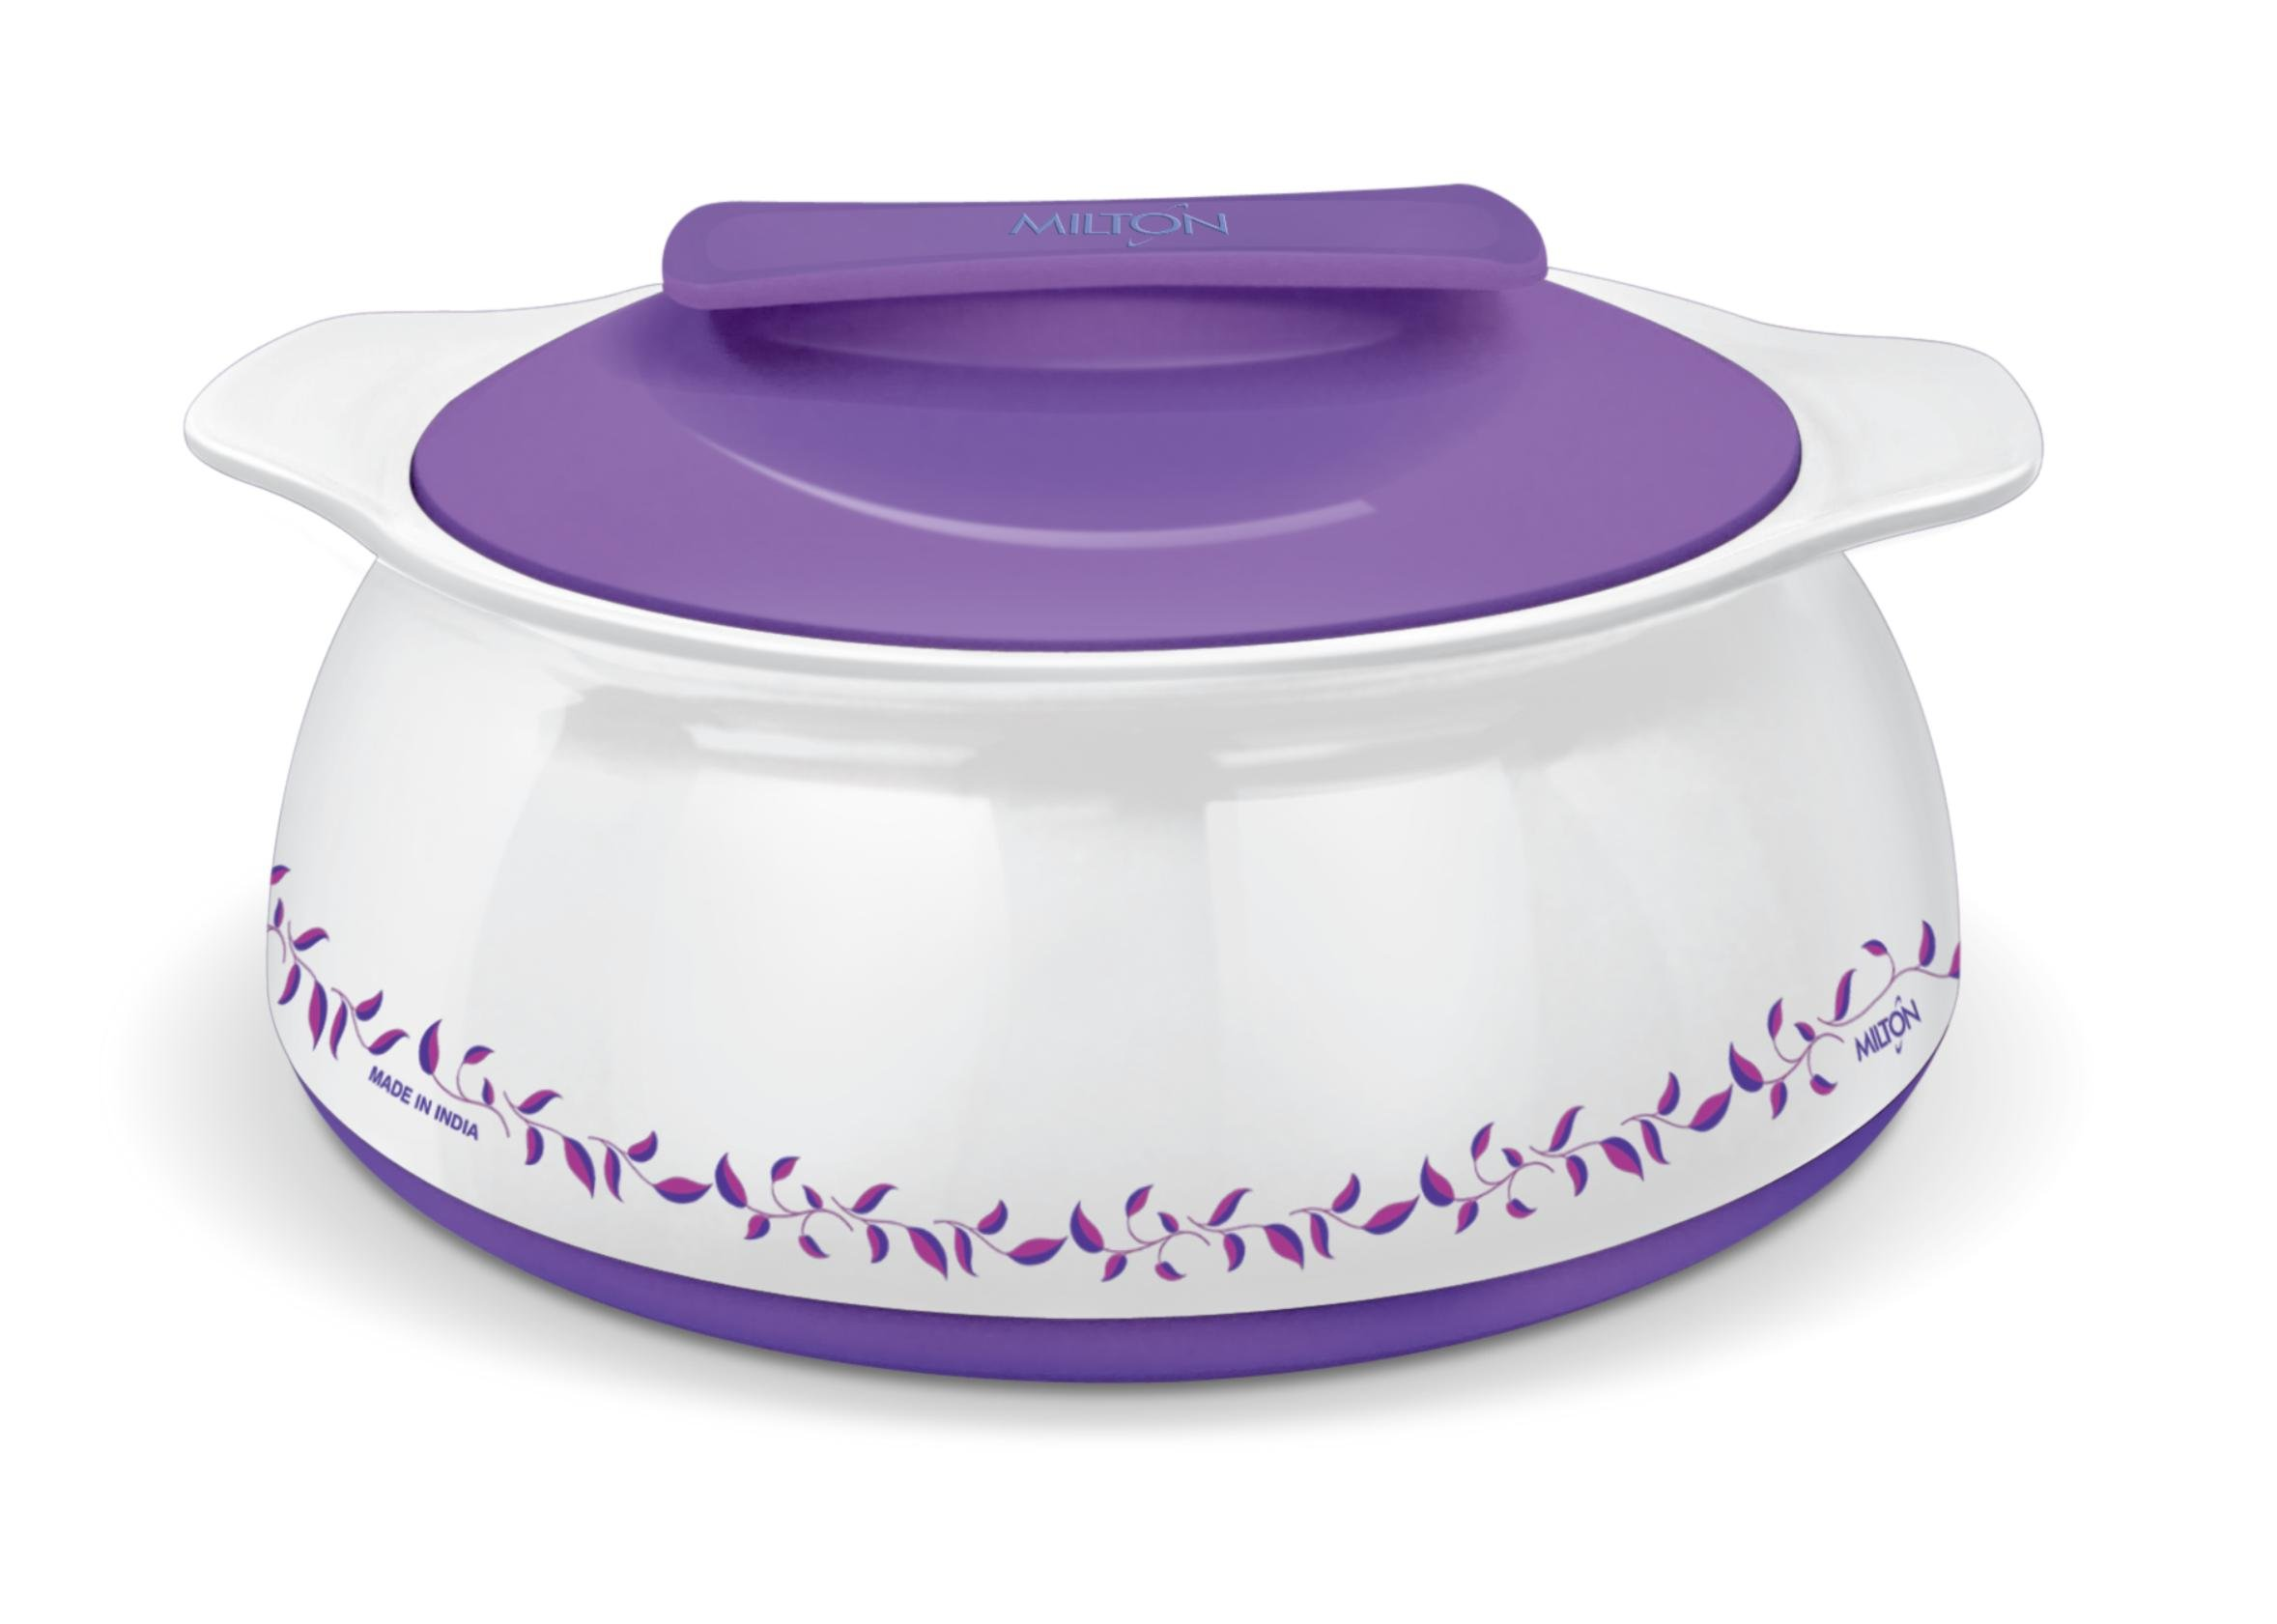 Milton Exotique Insulated Hot-pot Food Server Casserole with Stainless Steel Insert Keeps Food Warm/cold for Hours - 1.5 Lt